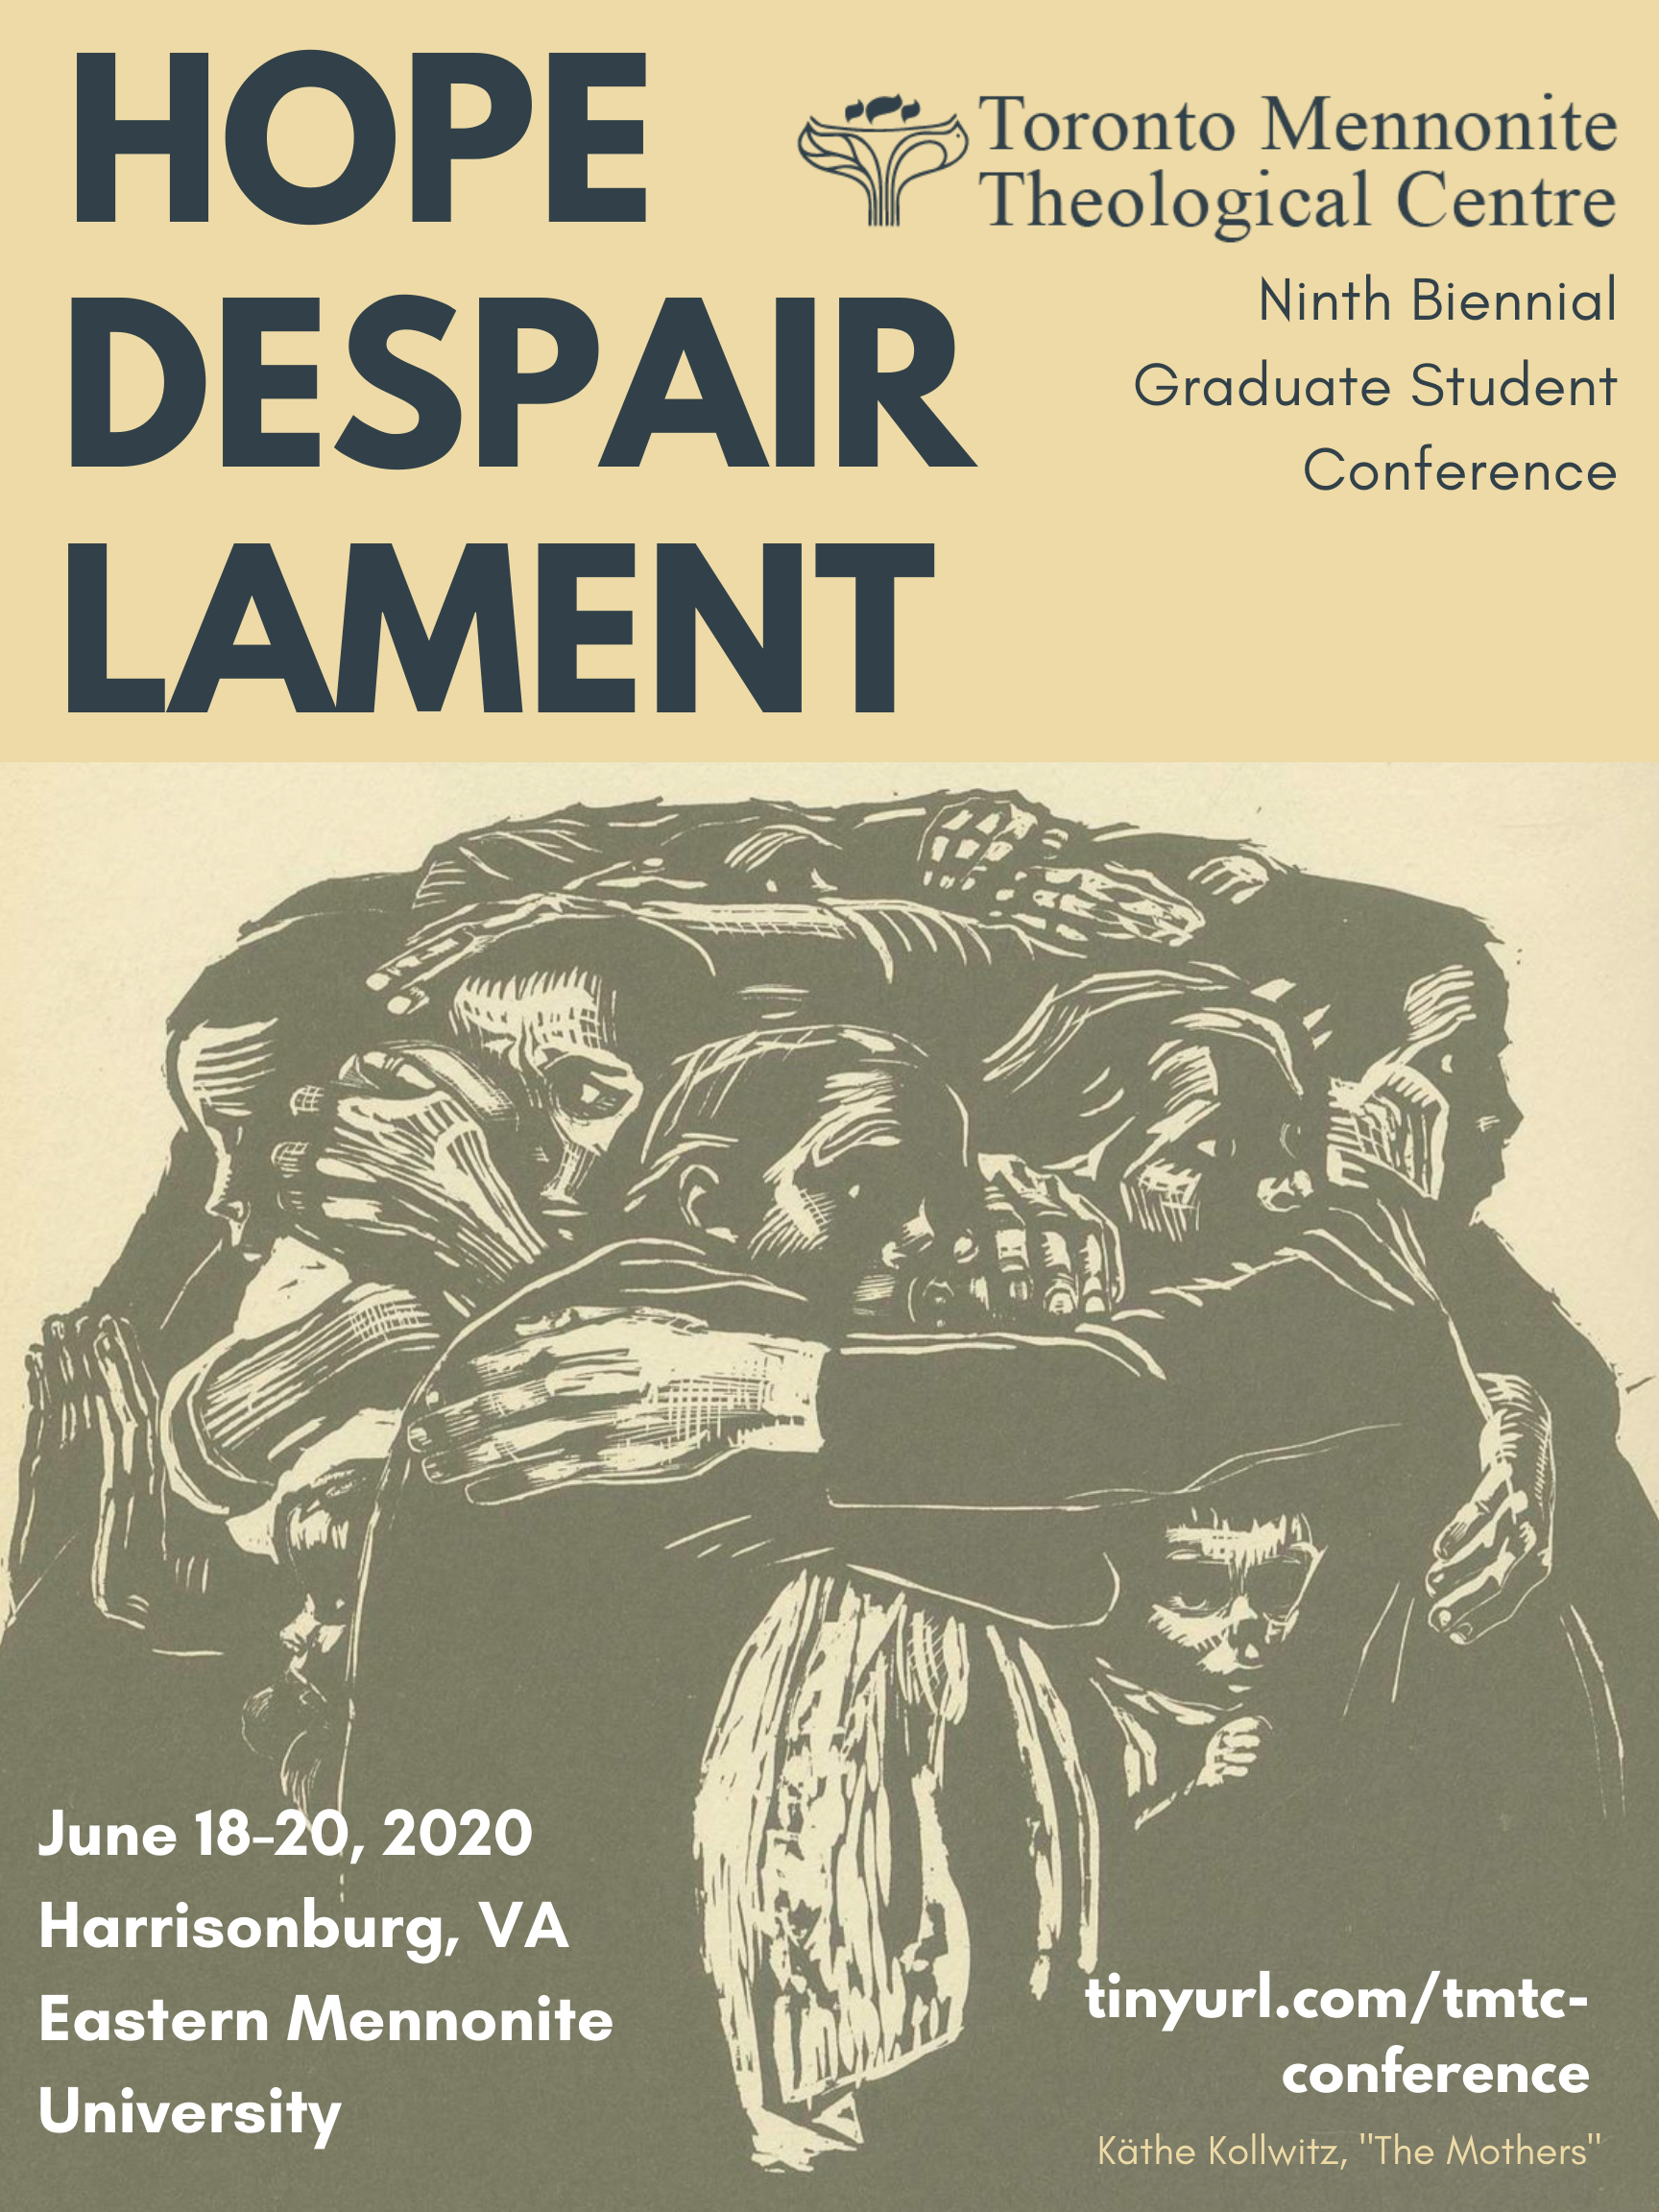 hope, despair, lament poster